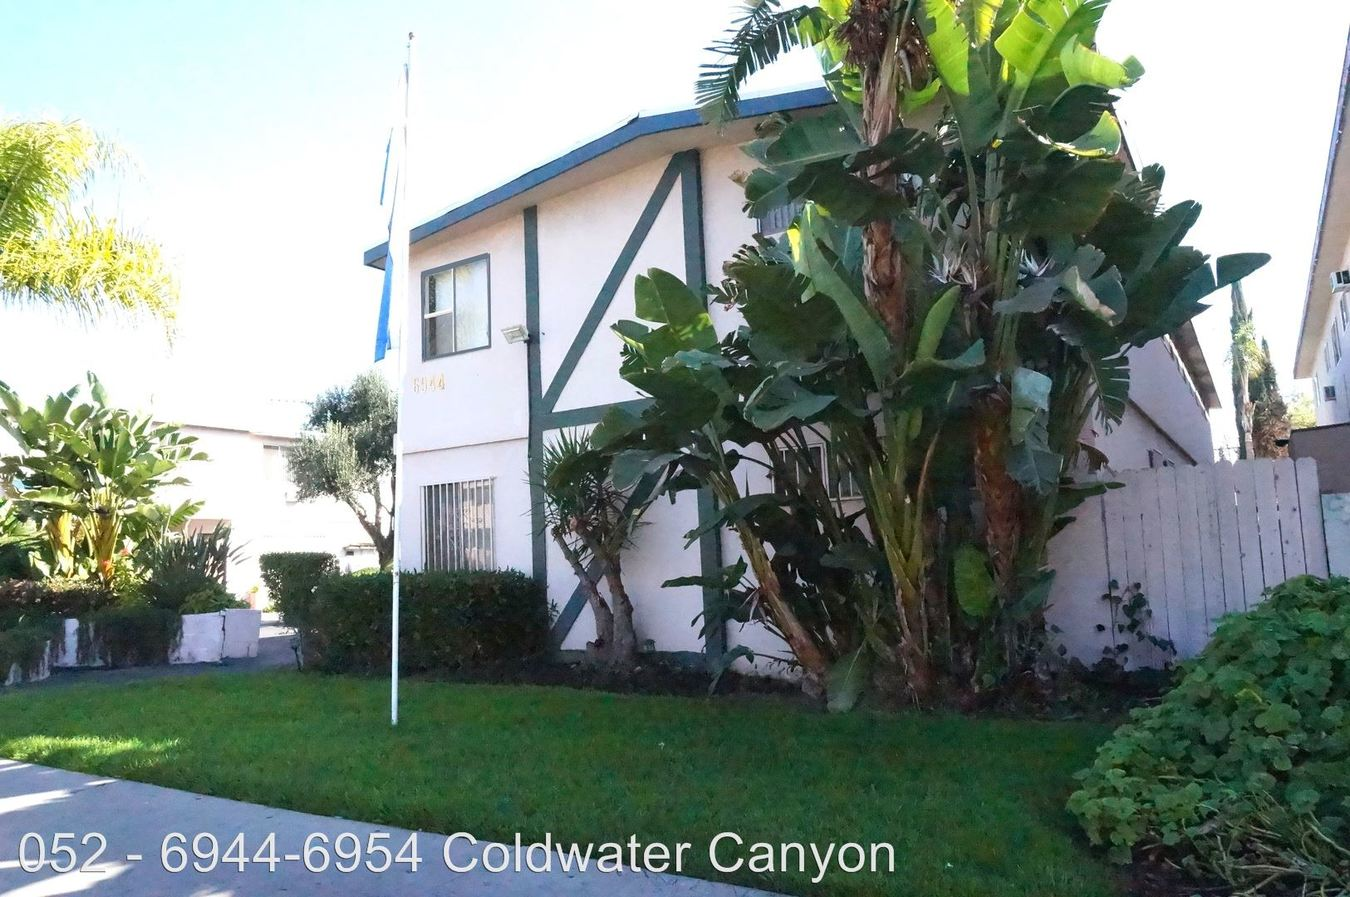 1 Bedroom 1 Bathroom Apartment for rent at 6944-6954 Coldwater Canyon Ave. in North Hollywood, CA